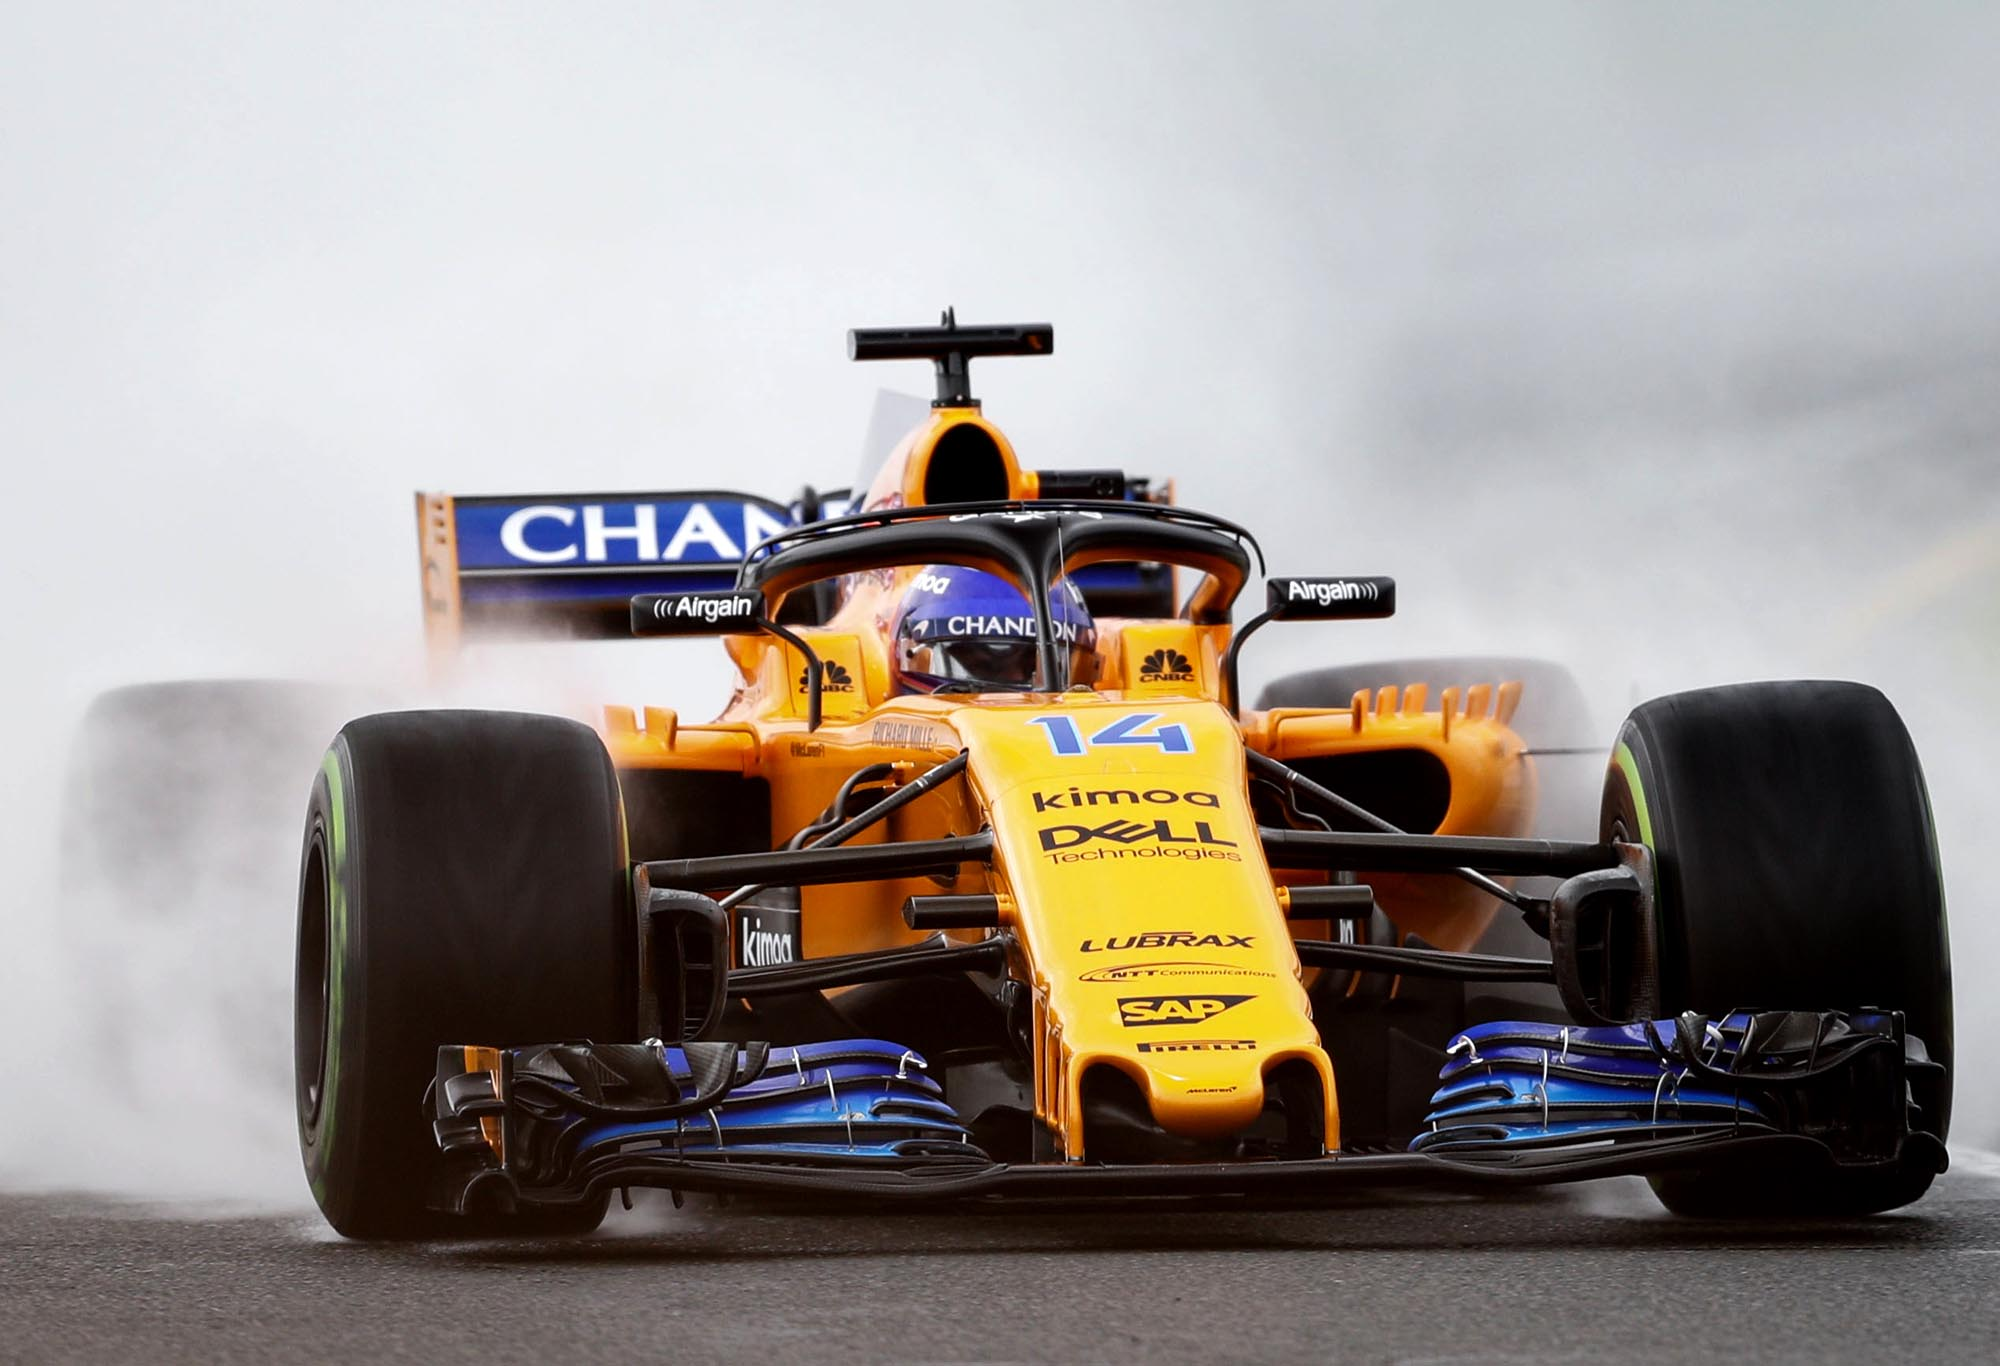 Fernando Alonso drives through a cloud of smoke at the 2018 Australian Grand Prix.